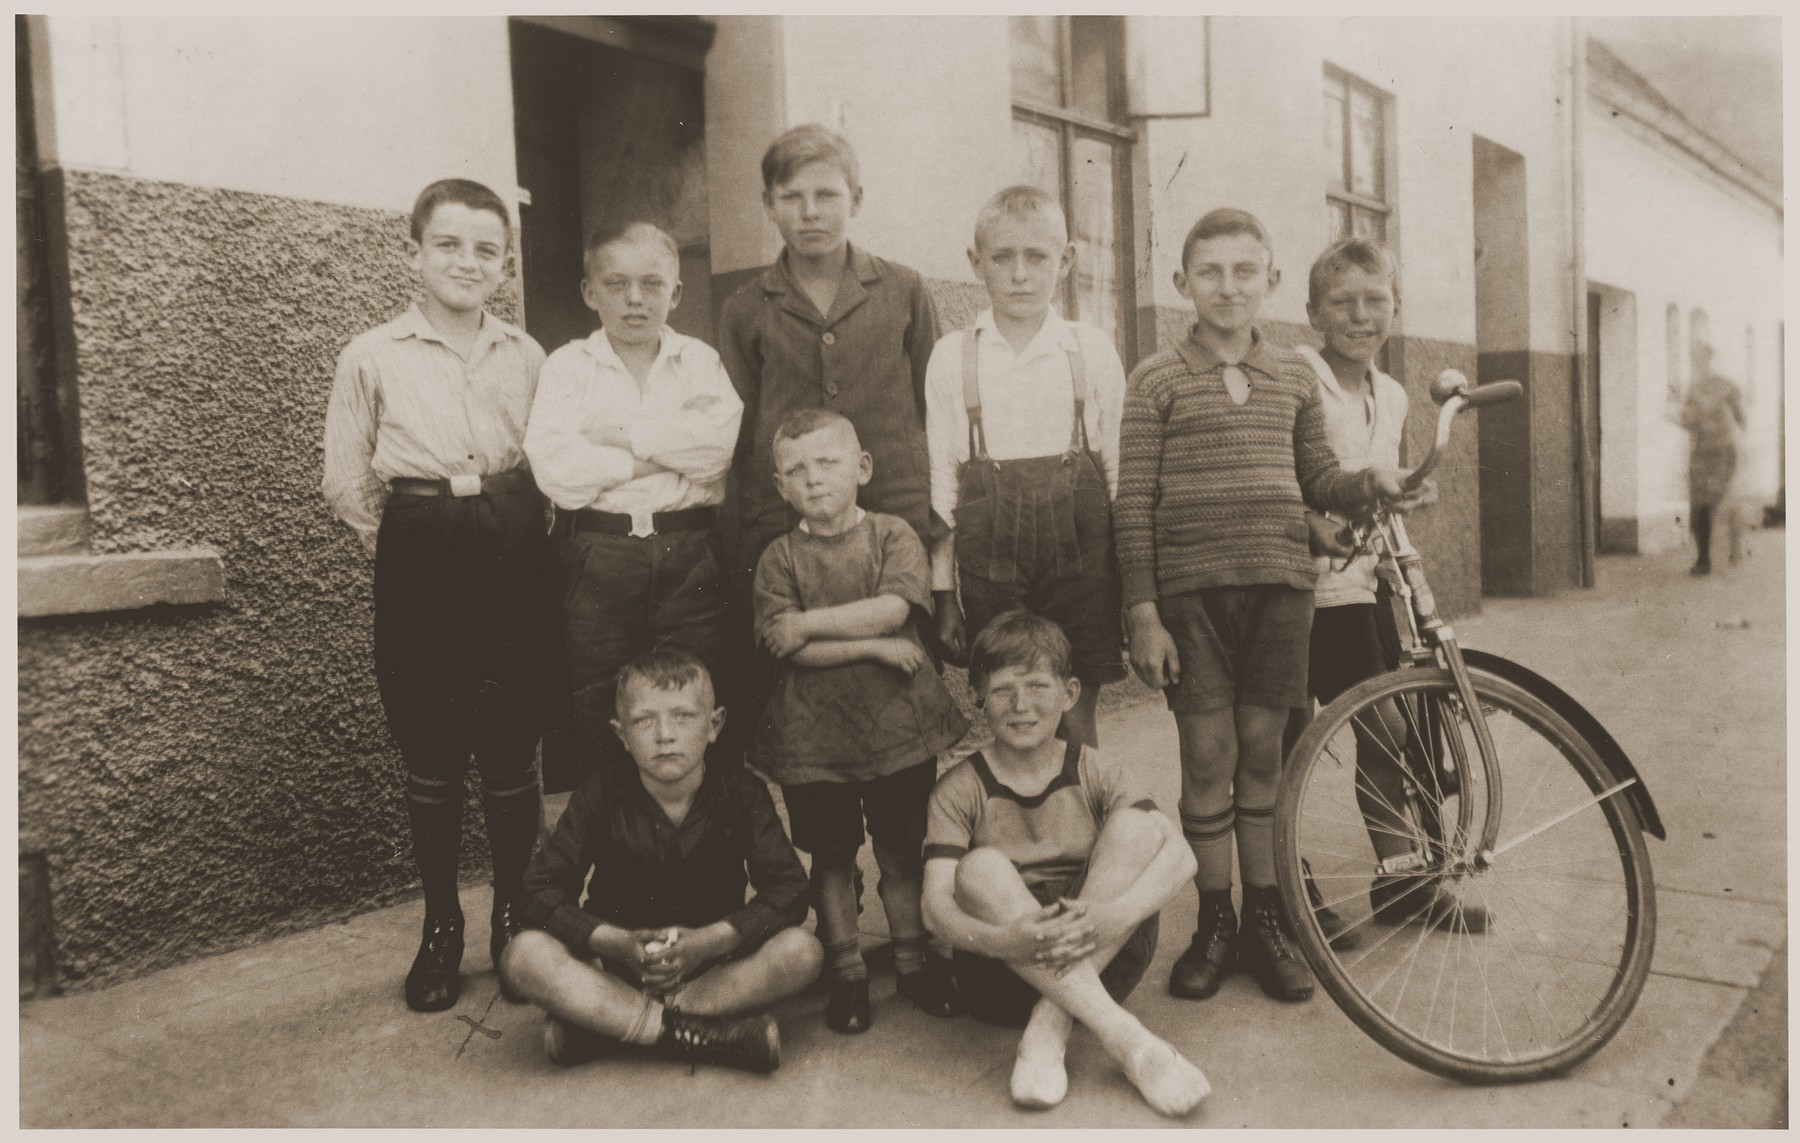 Beno and Gerd Zwienicki (standing first and second on the right) pose in front of their father's bicycle shop with a group of non-Jewish children from the neighborhood.    Beno and Gerd Zwienicki left Germany in 1939 after having endured their mother's murder and their own arrest on Kristallnacht.  One of the German boys later became a guard at the Bergen-Belsen concentration camp.